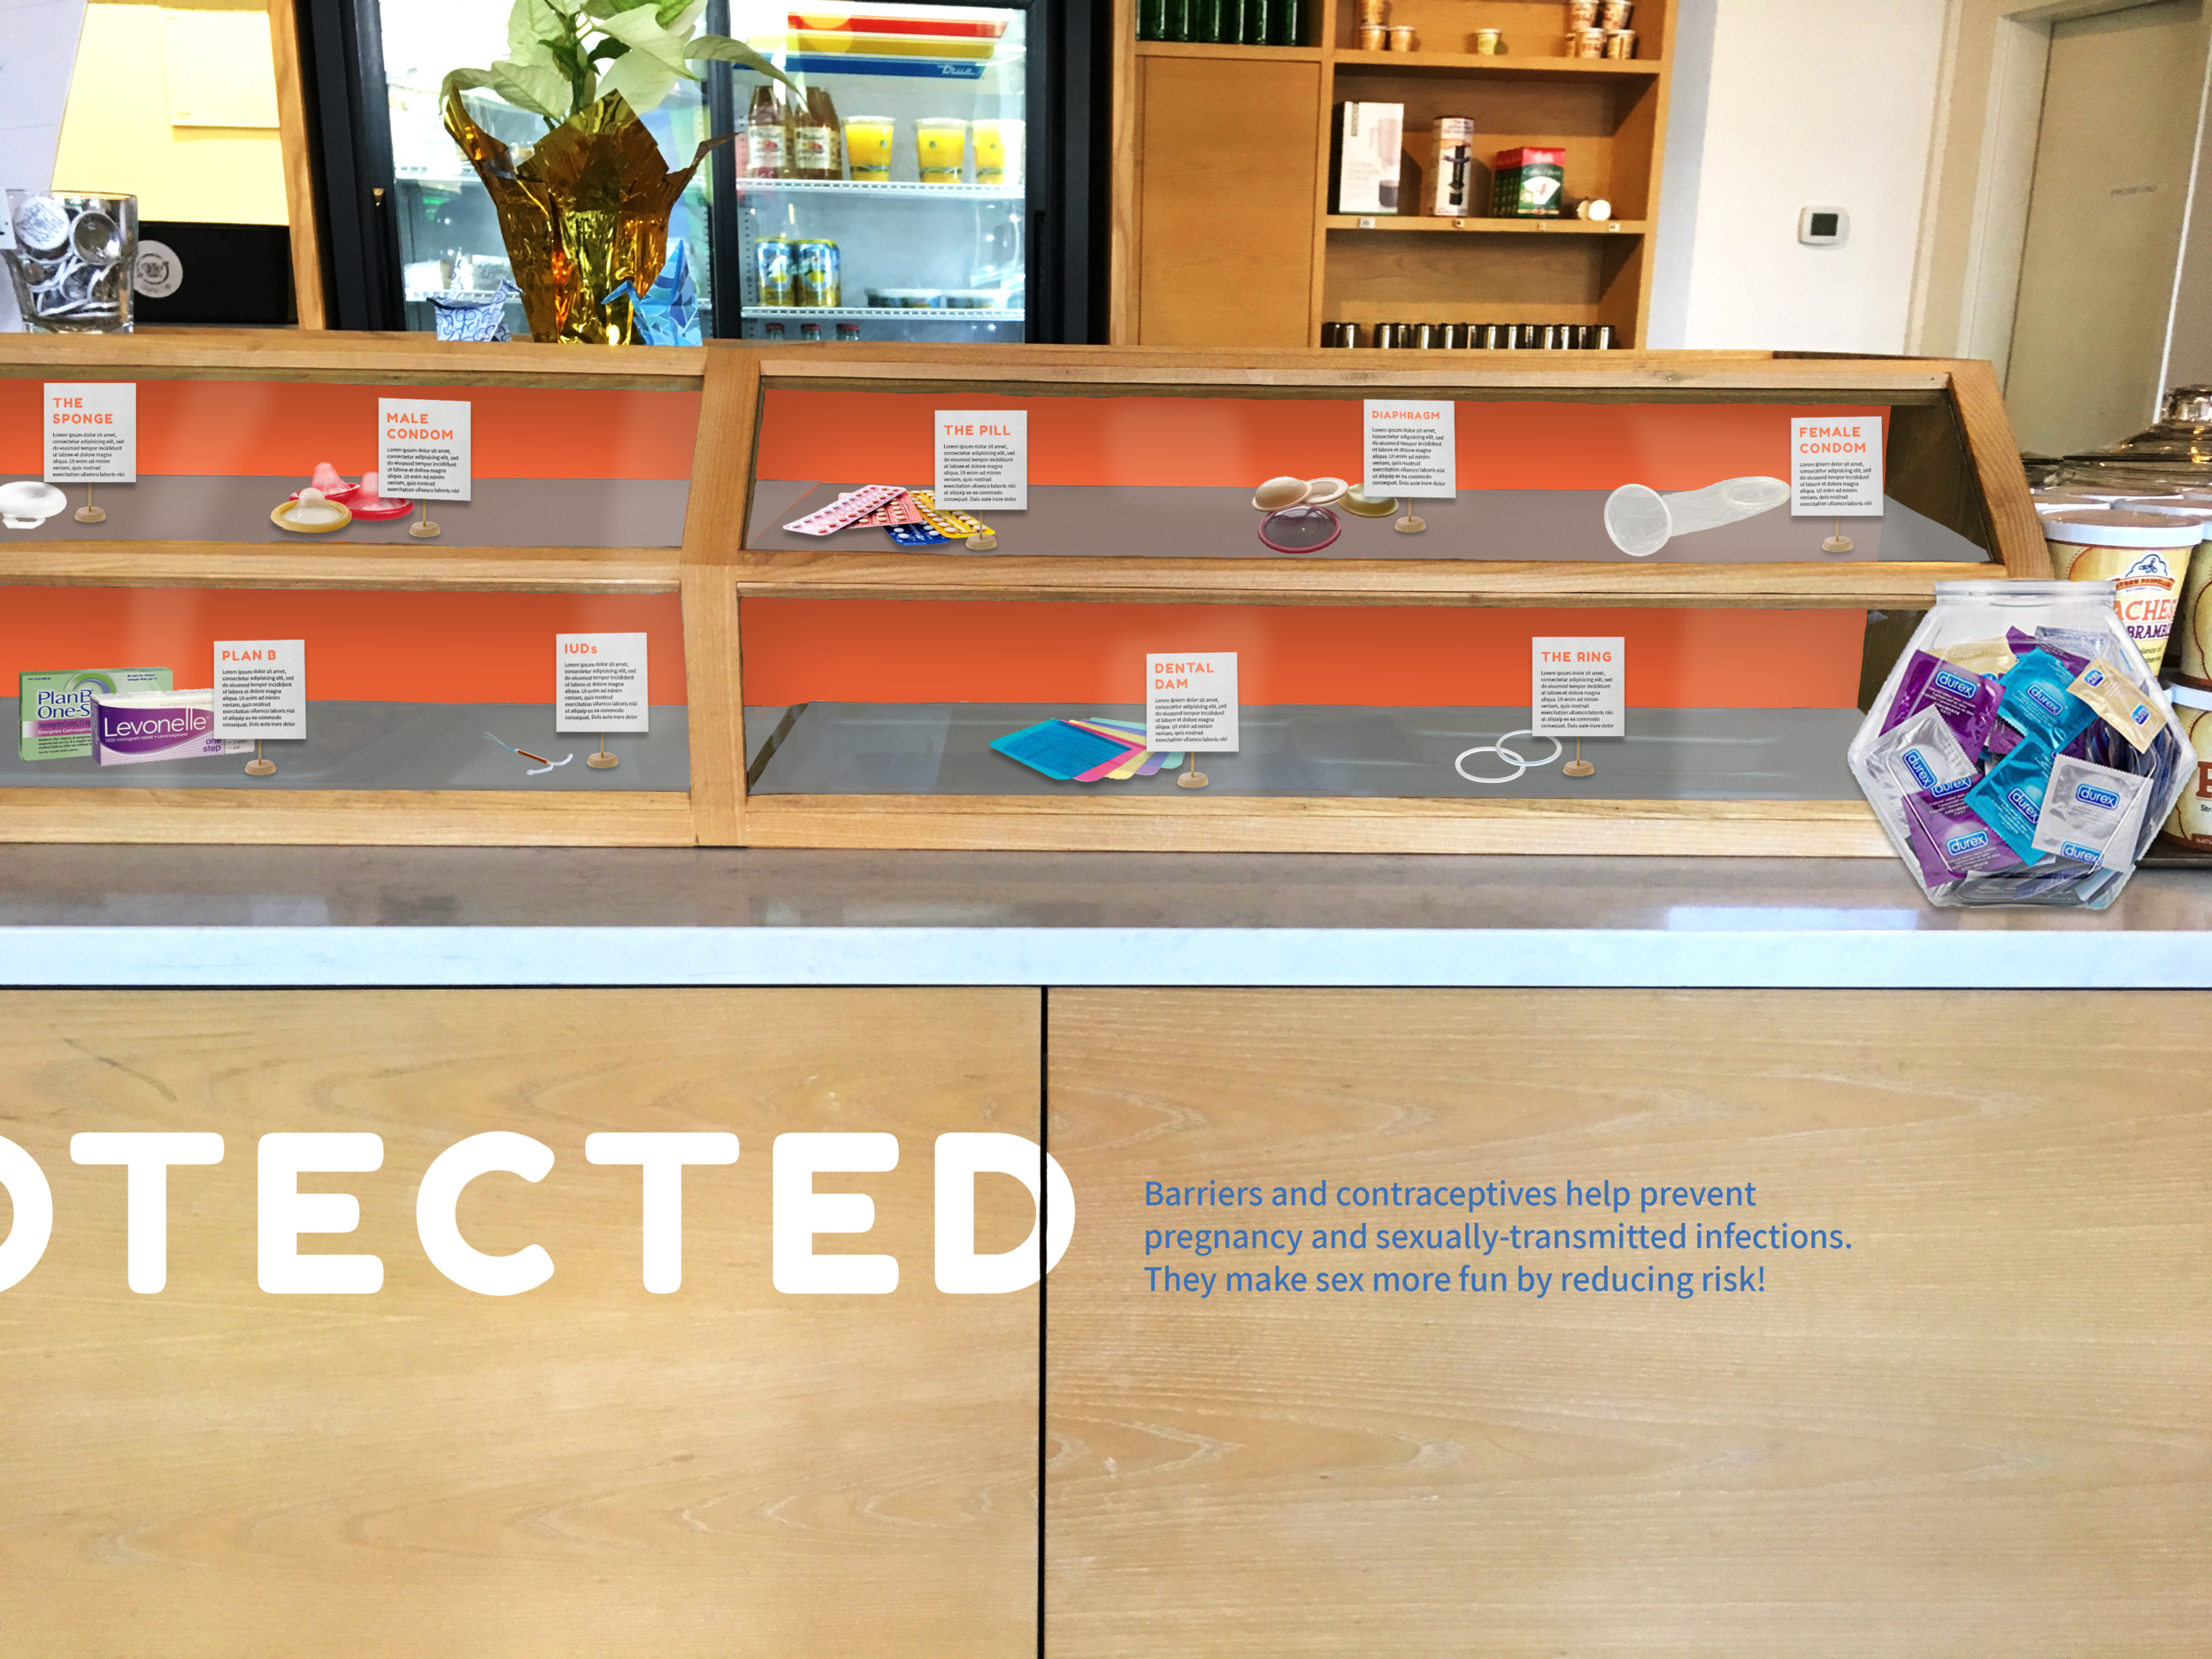 Sex should be... PROTECTED - Sex should be... Protected is located inside the bakery case that would be typically be filled with pastries. A selection of different contraceptives and barriers are on display along with information about them. This encourages people to get familiar with their options and learn more about how different methods work.